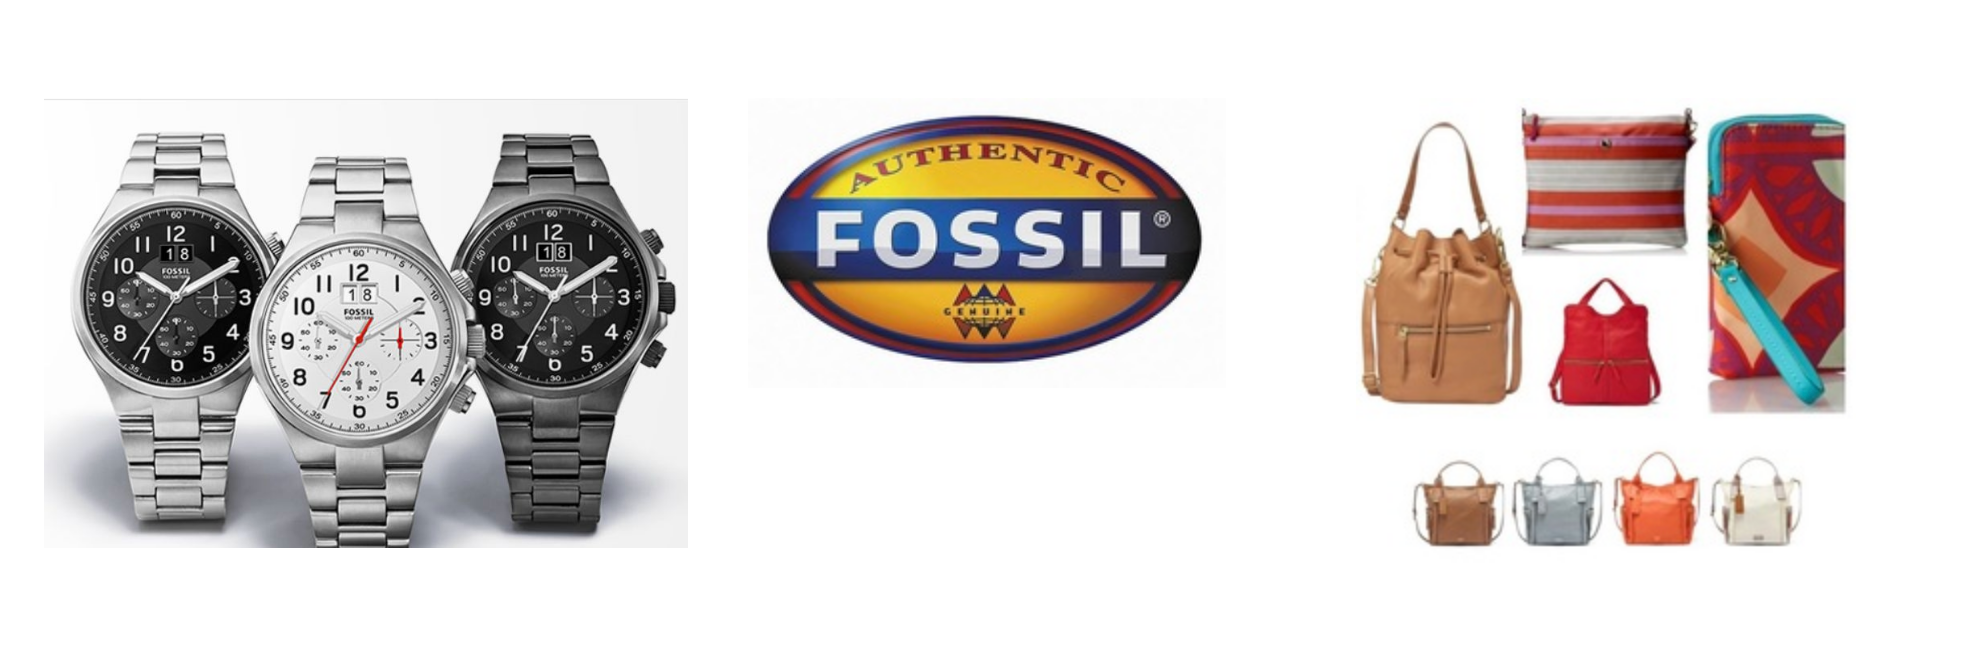 Fossil watches, handbags